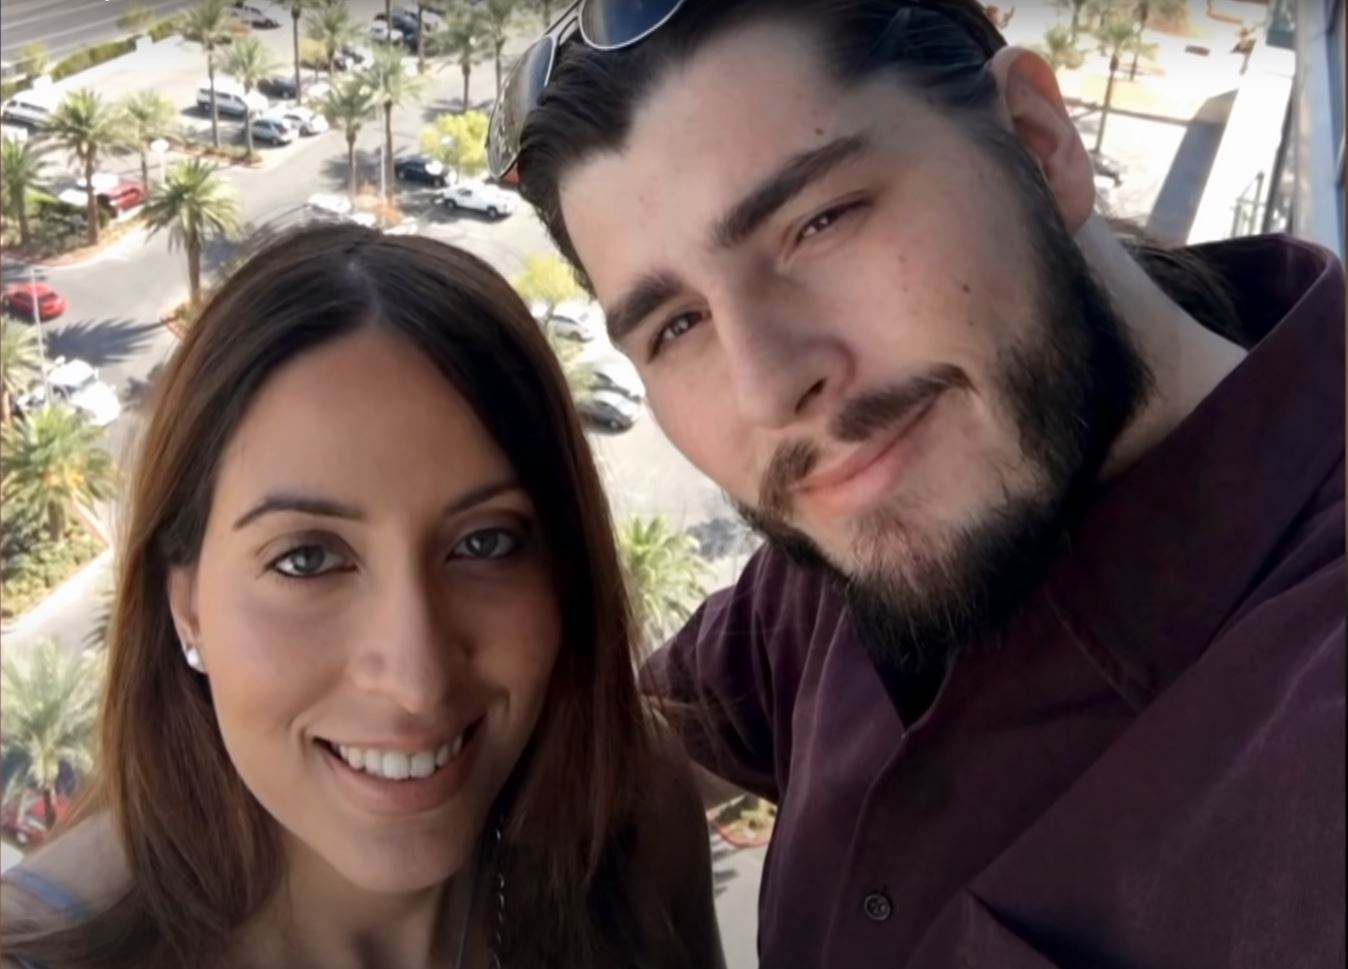 Andrew Kenton poses with Amira from 90 Day Fiancé